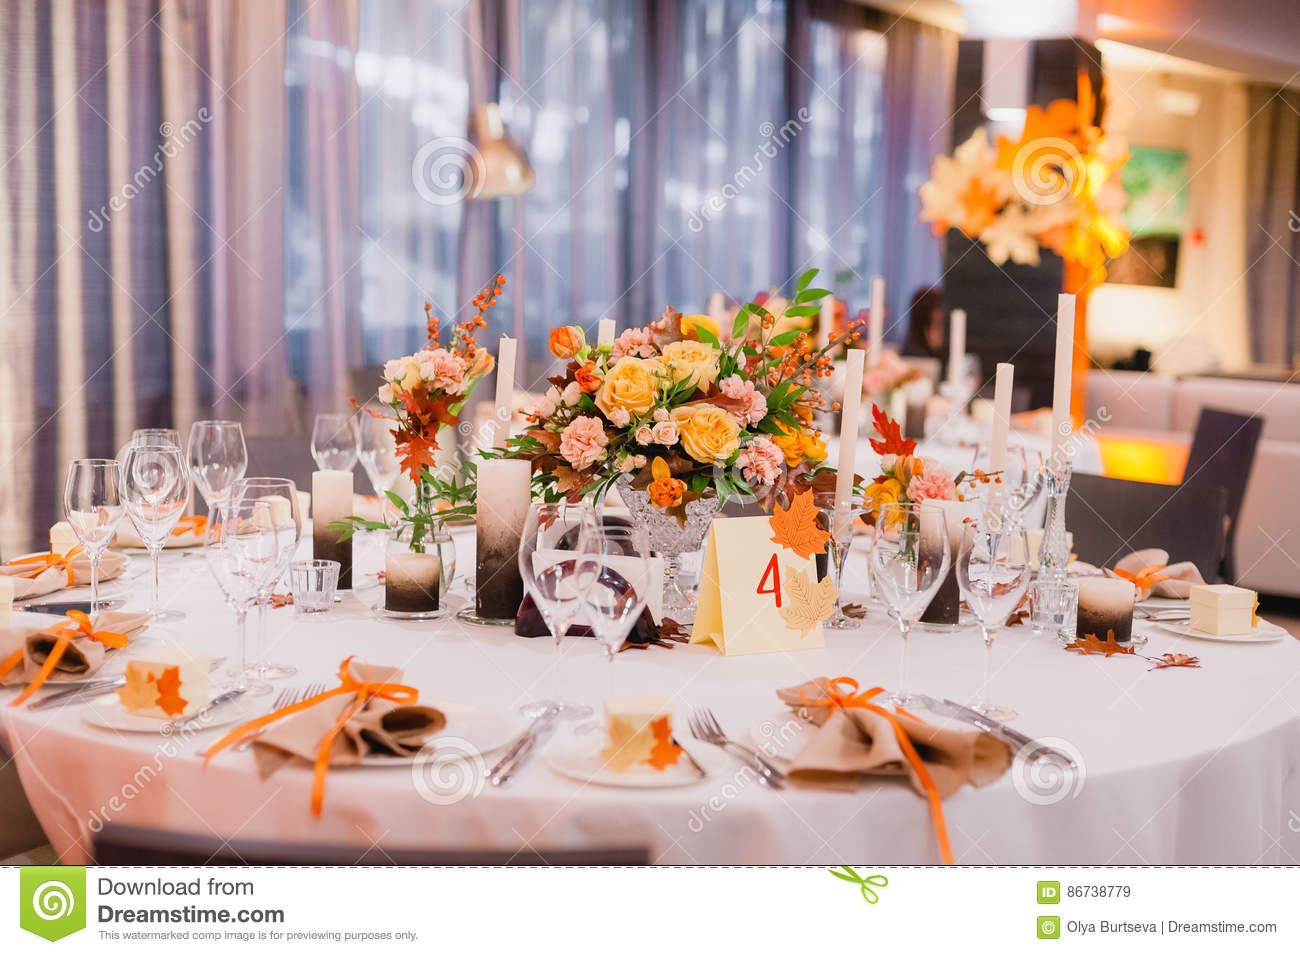 Wedding Table Decoration Stock Image Image Of Crystal 86738779